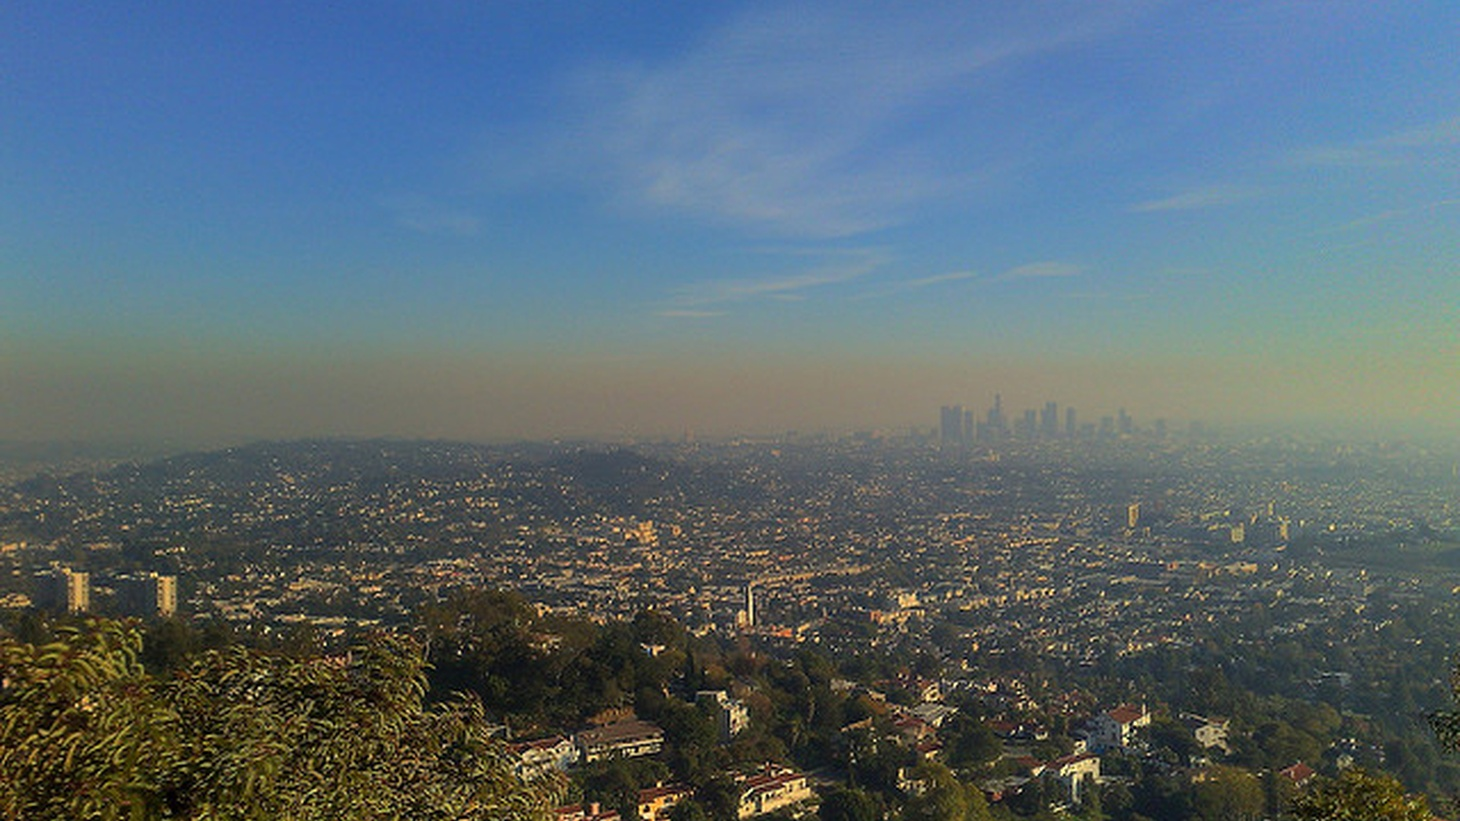 In the past 30 years, smog has decreased dramatically in Southern California thanks to the South Coast Air Quality Management District. But the region is still the nation's smoggiest. Now some people are questioning why the new AQMD board is weakening air pollution regulations and adopting rules backed by oil refineries and other major polluters.